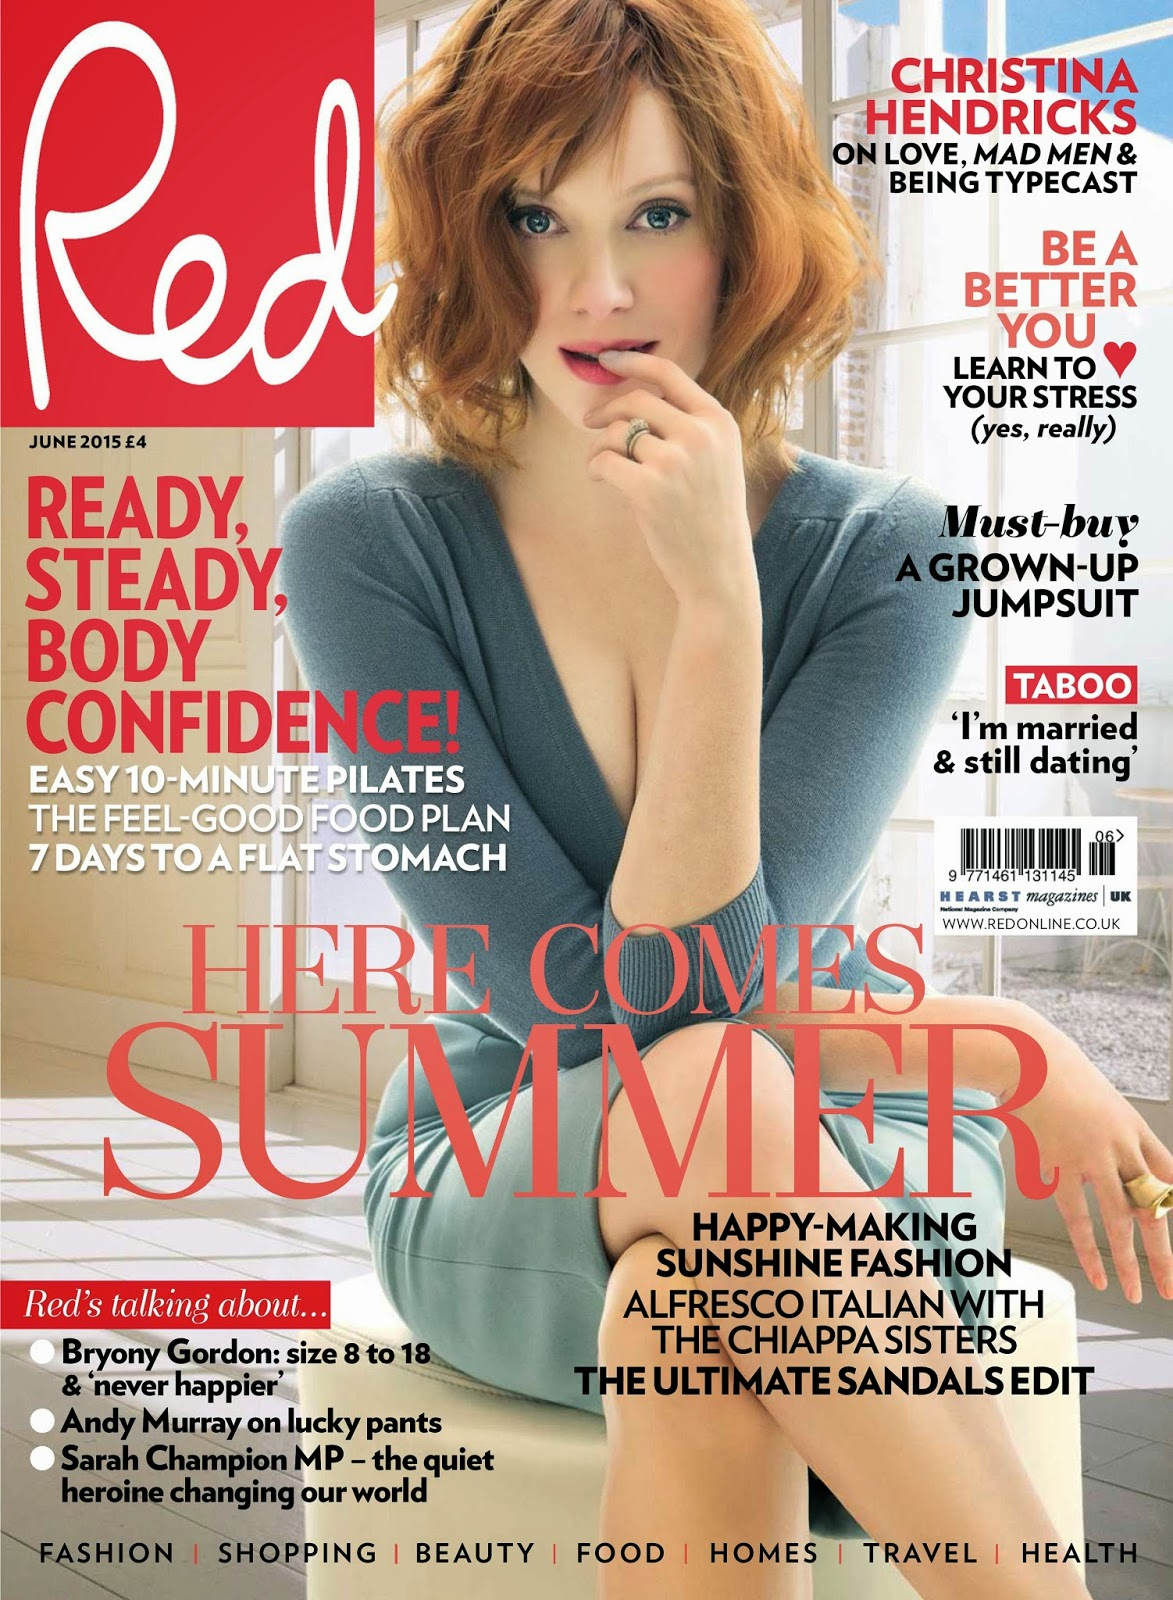 Actress @ Christina Hendricks - Red UK, June 2015